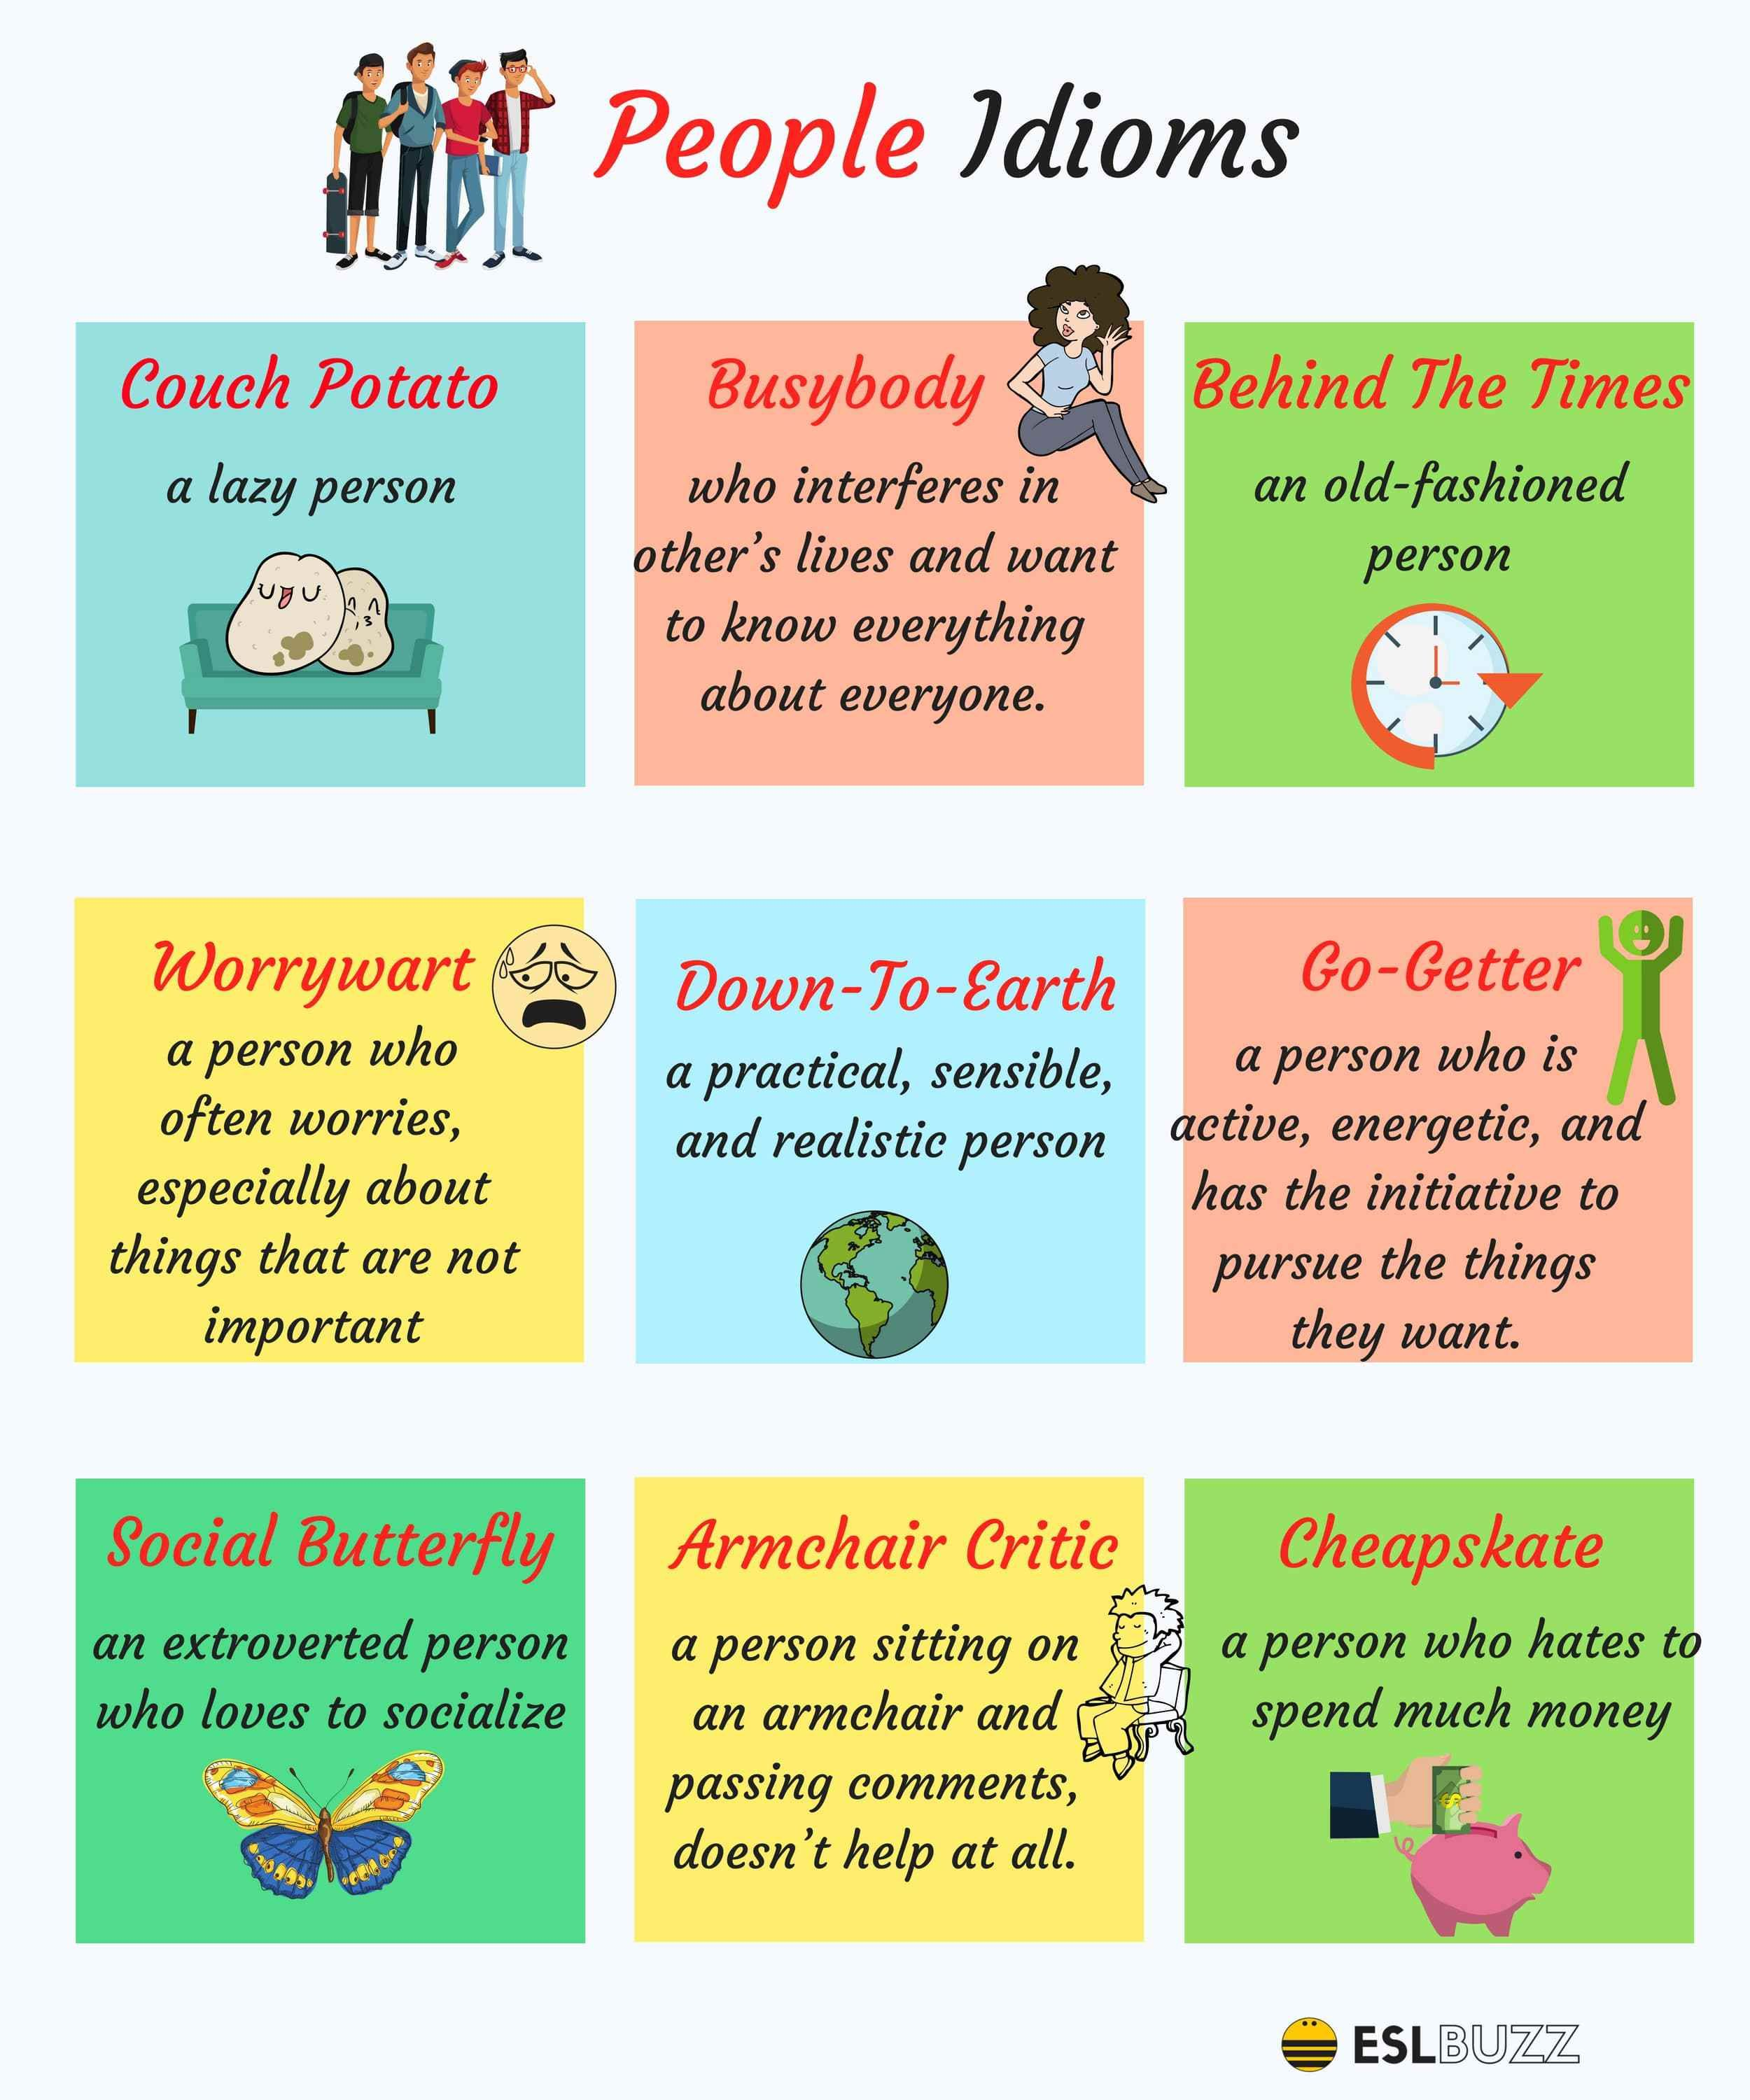 25 Common Idioms To Describe People In English With Images